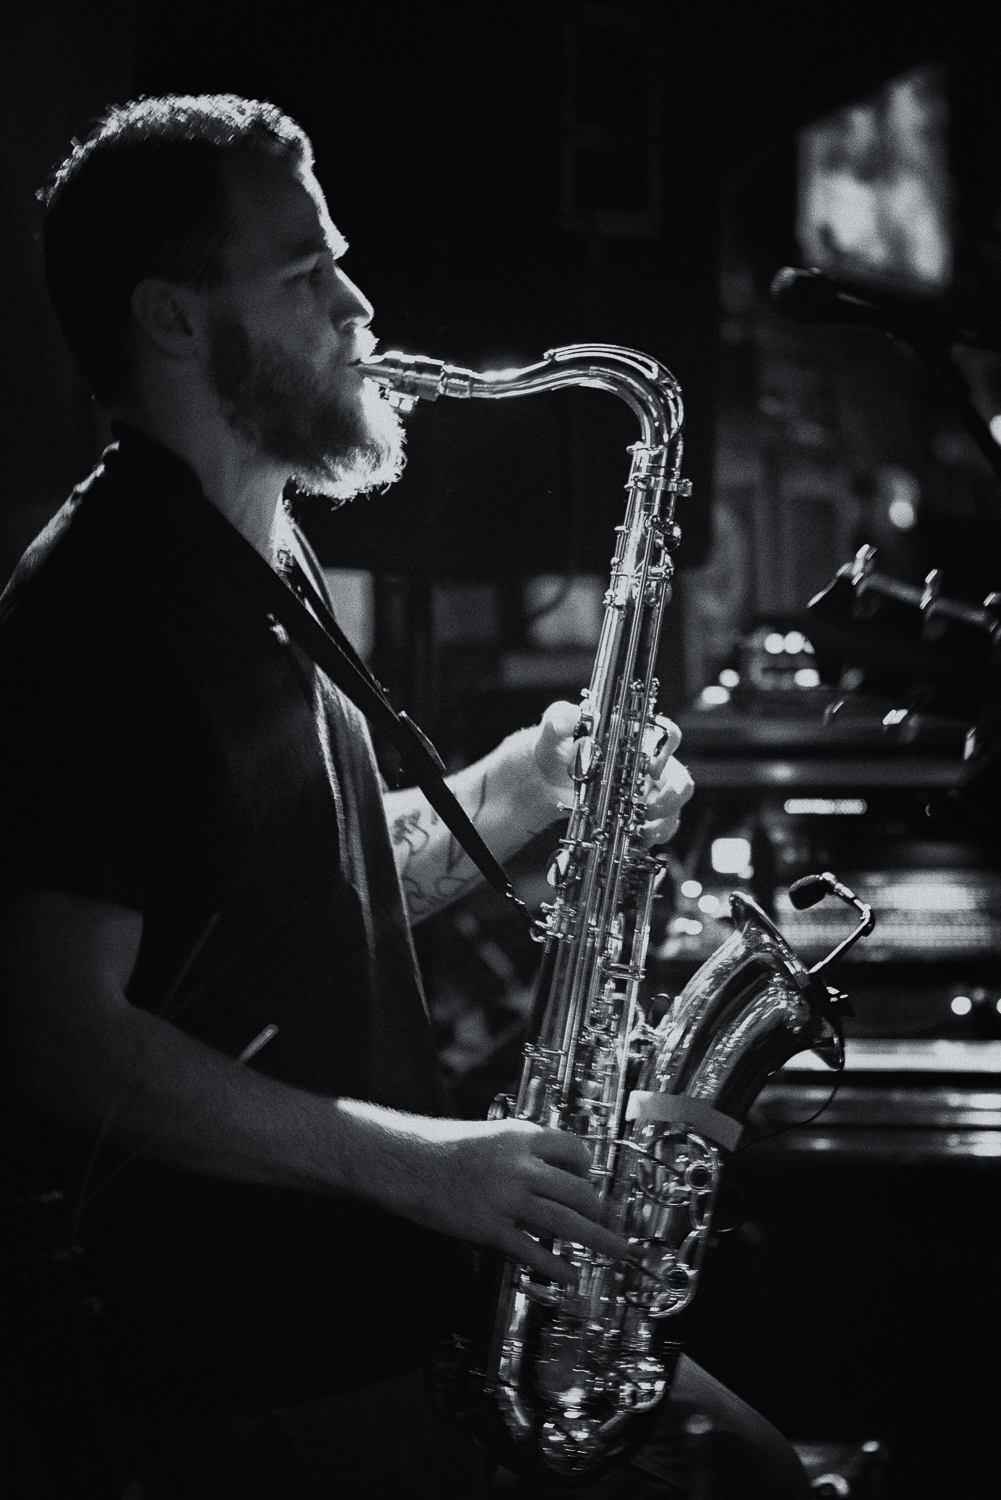 Austin Live Music - Sax Player